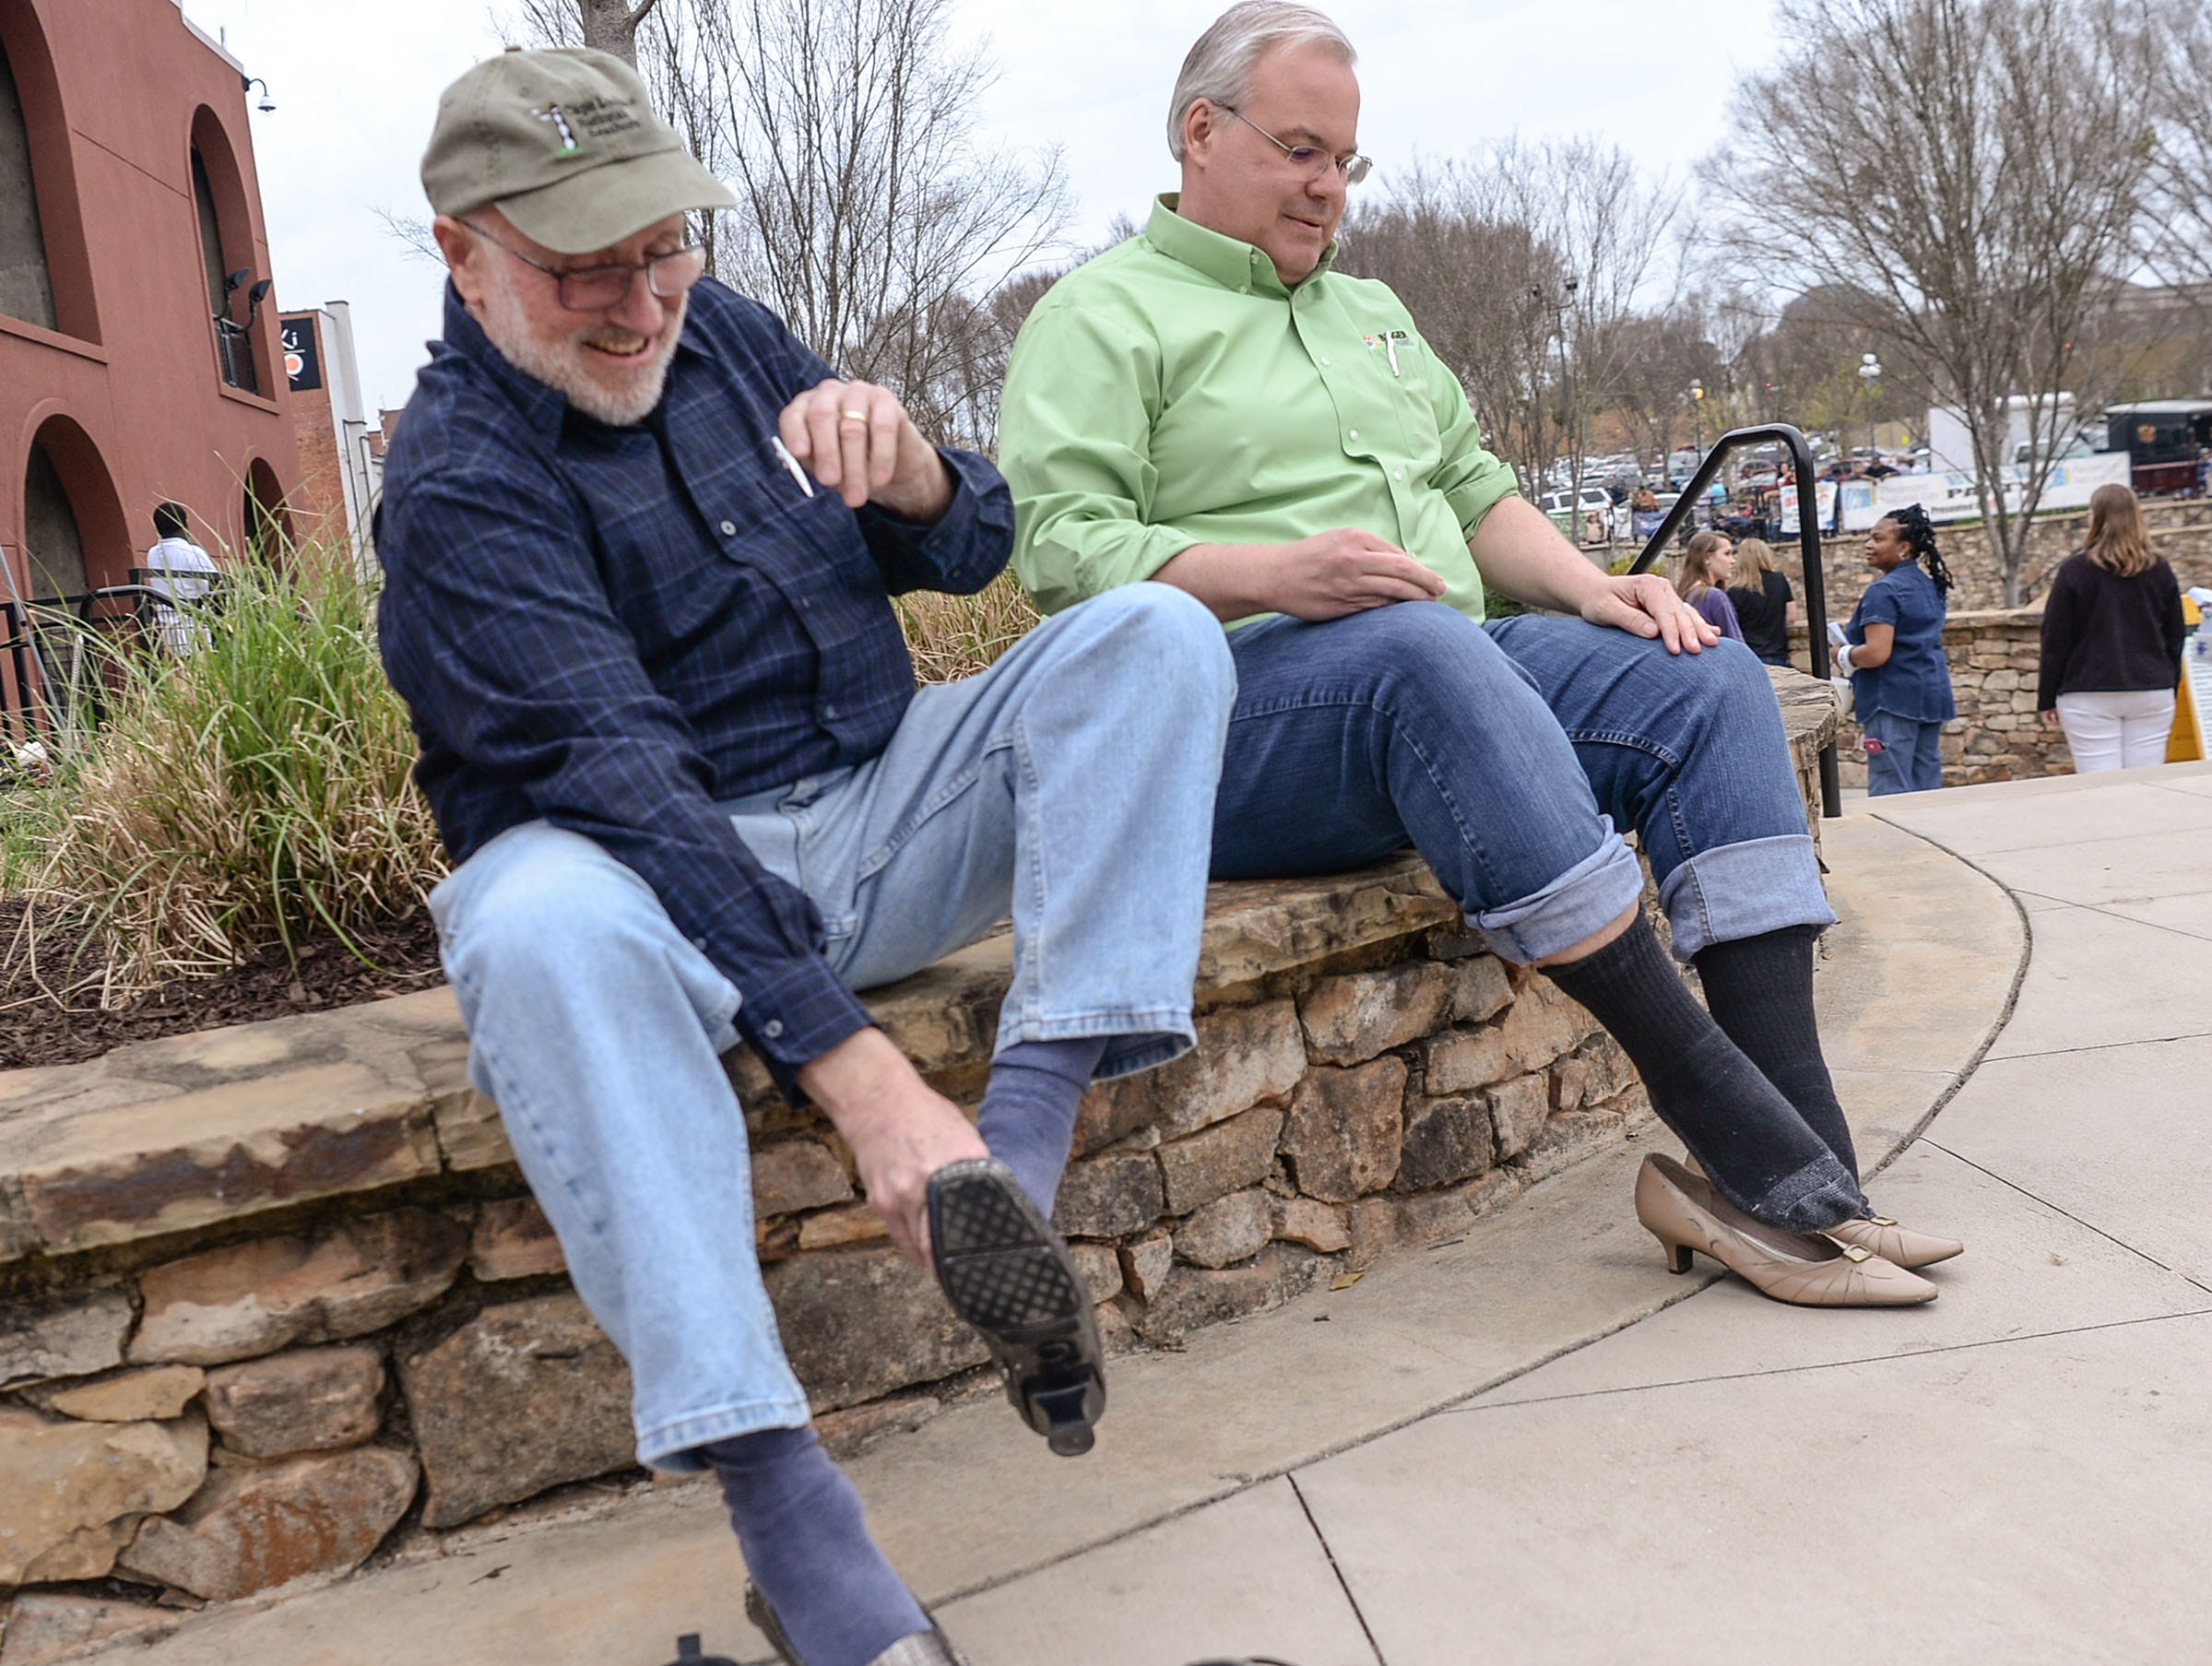 """Bill West, left, and Chip Reaves, right, both representing St. John's United Methodist Church, put on high-heels before the Foothills Alliance """"Walk a Mile in Her Shoes"""" event to bring awareness to National Sexual Assault Awareness Month, during a break in the Main Street Program Block Party music by Combo Kings at Carolina Wren Park in downtown Anderson Thursday."""